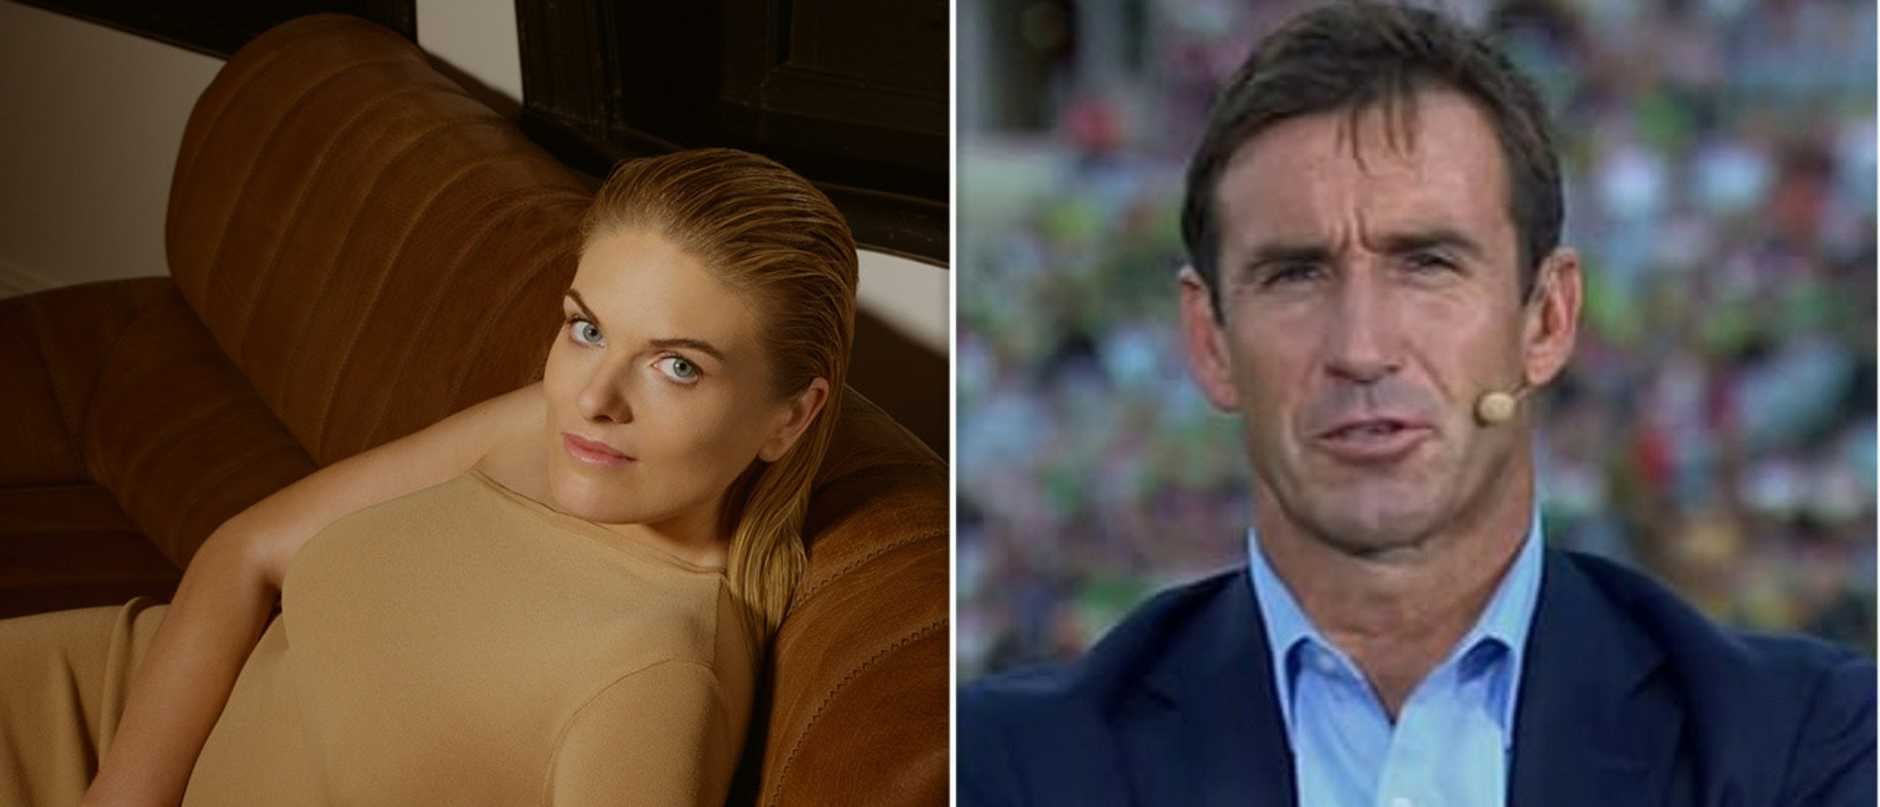 Erin Molan was trolled online after rumours surfaced last year that she did not get along with fellow Channel 9 commentator and legend Andrew Johns.